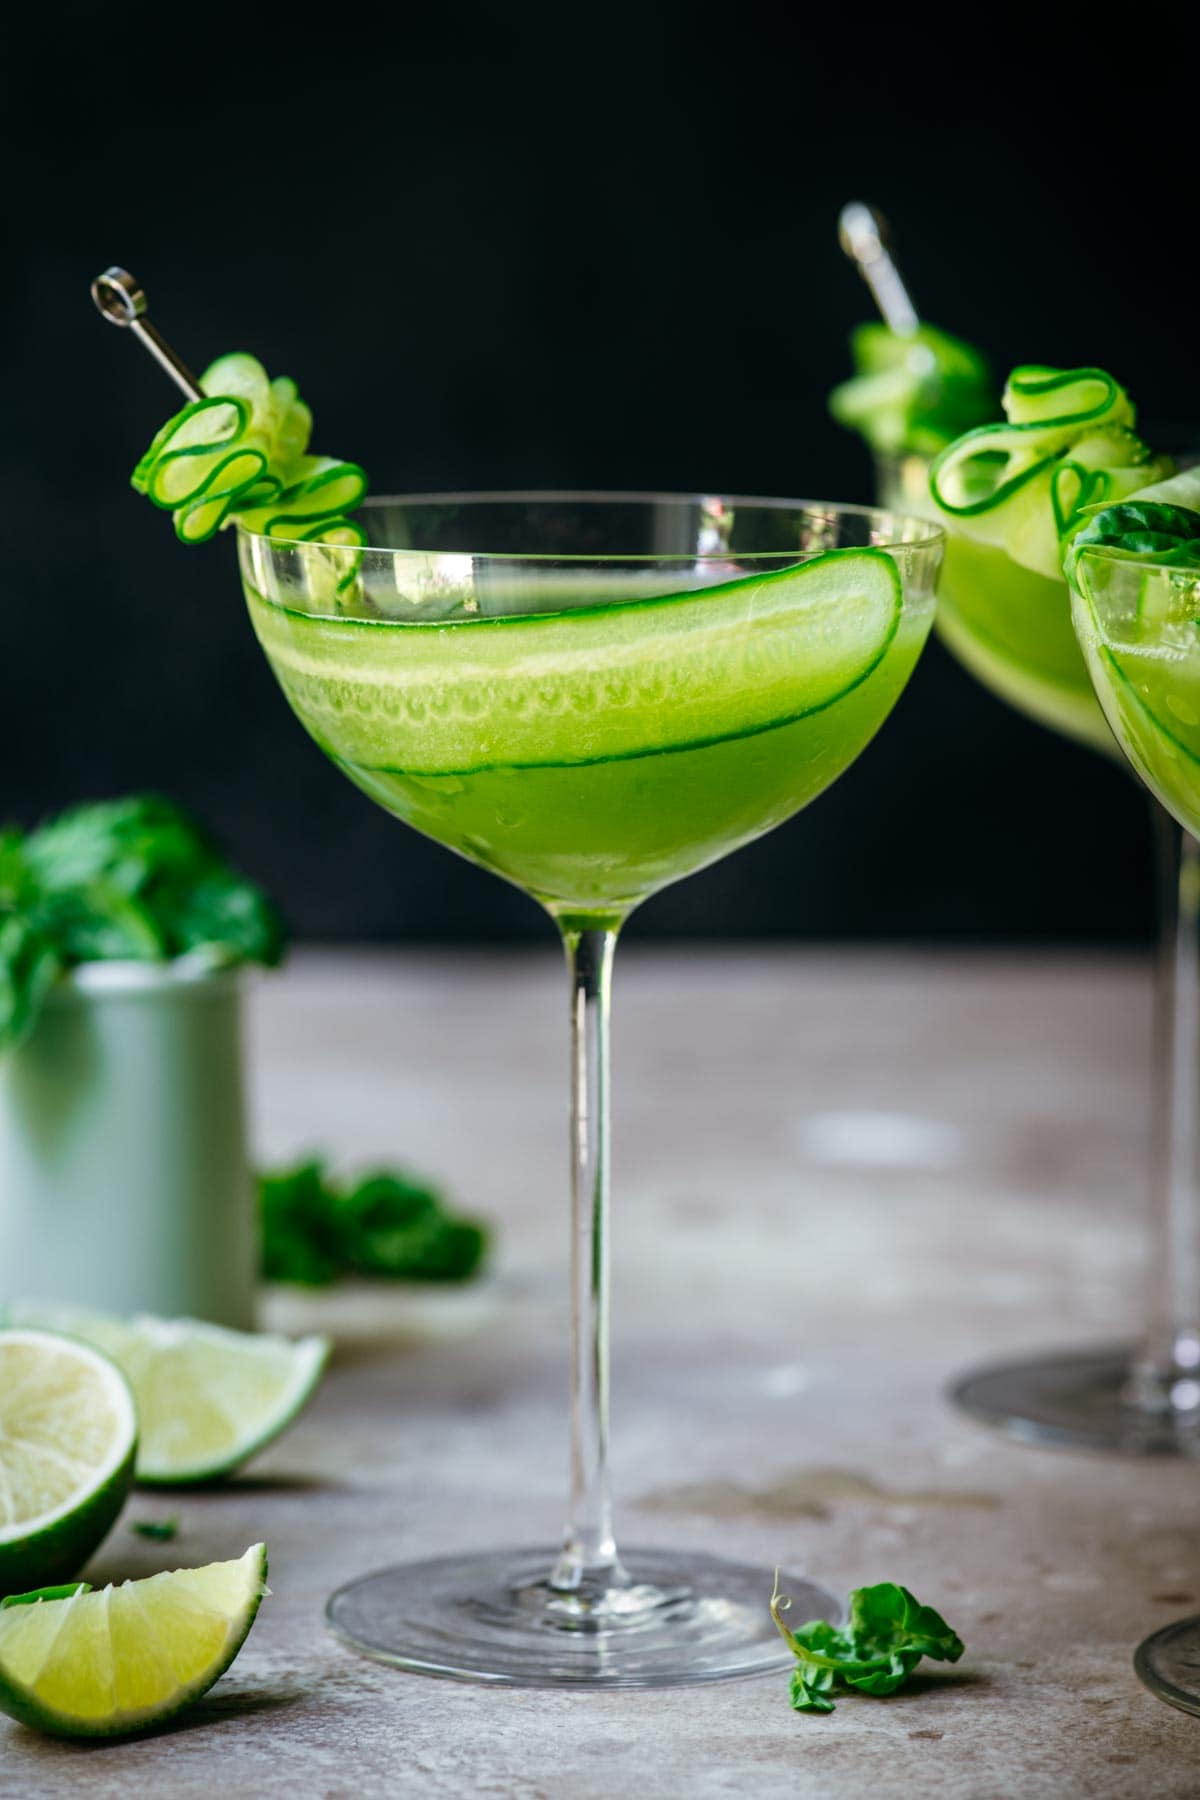 Front view of cucumber martini in a martini glass, garnished with cucumber.